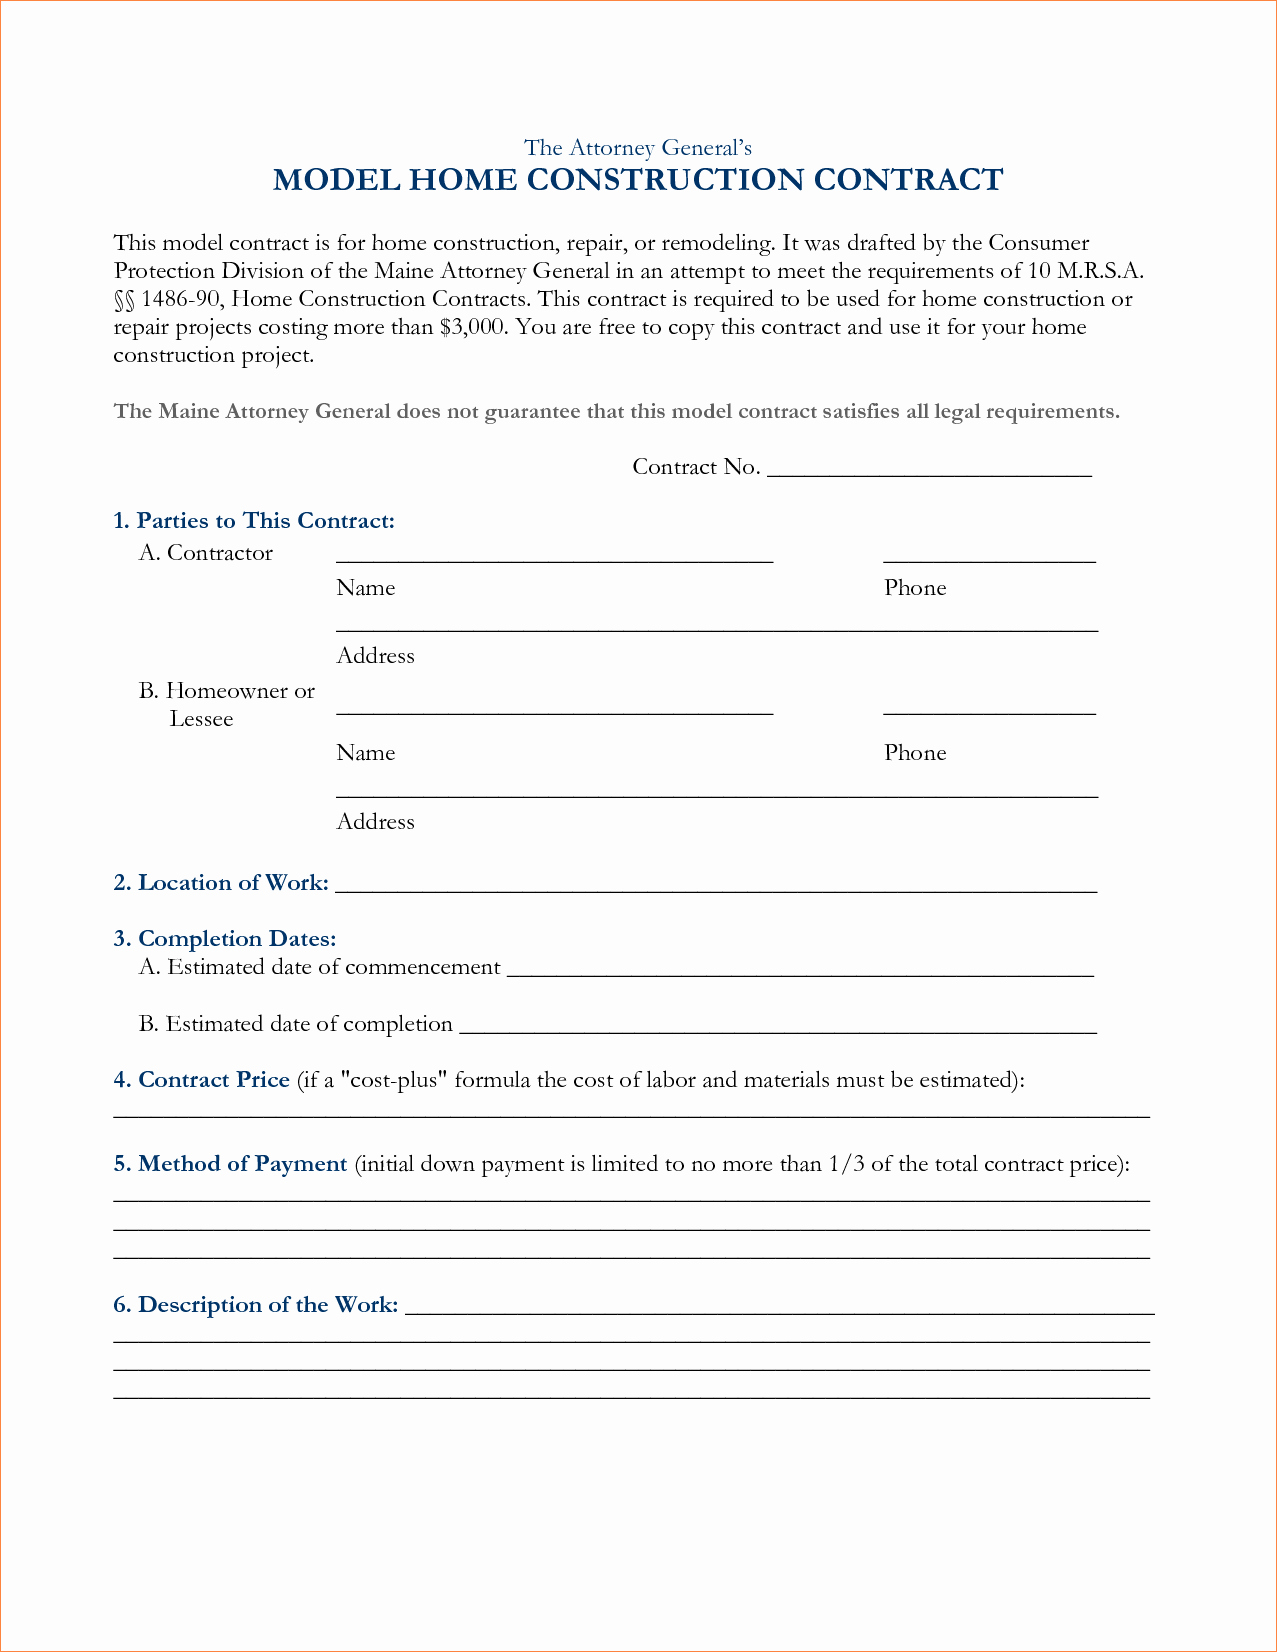 Free Construction Contract Template Luxury Construction Contract Template